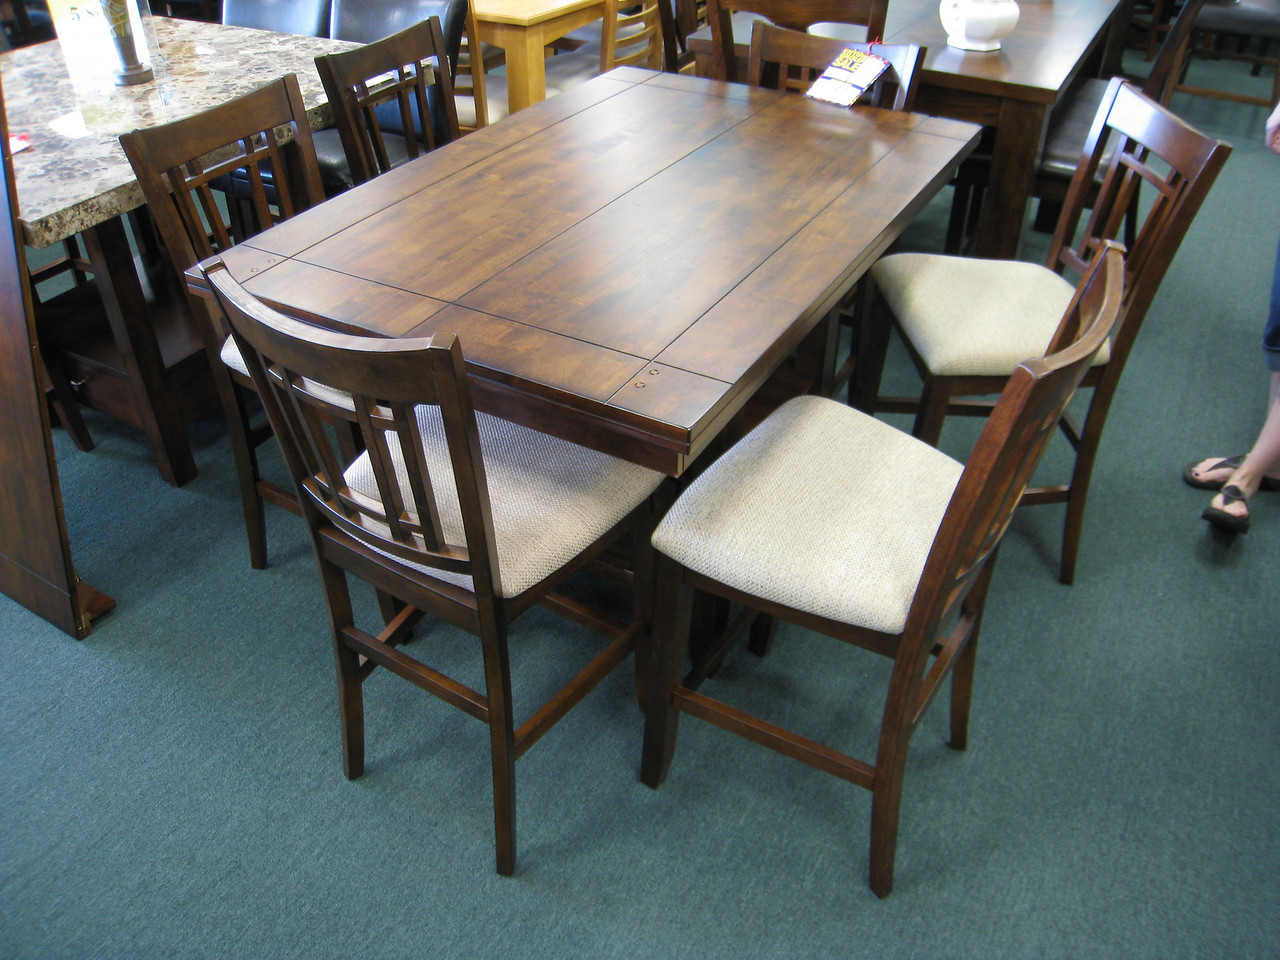 Kitchen table we're considering getting. There is also a leaf that goes in the middle. This is at Dallas Dinettes off I-35.